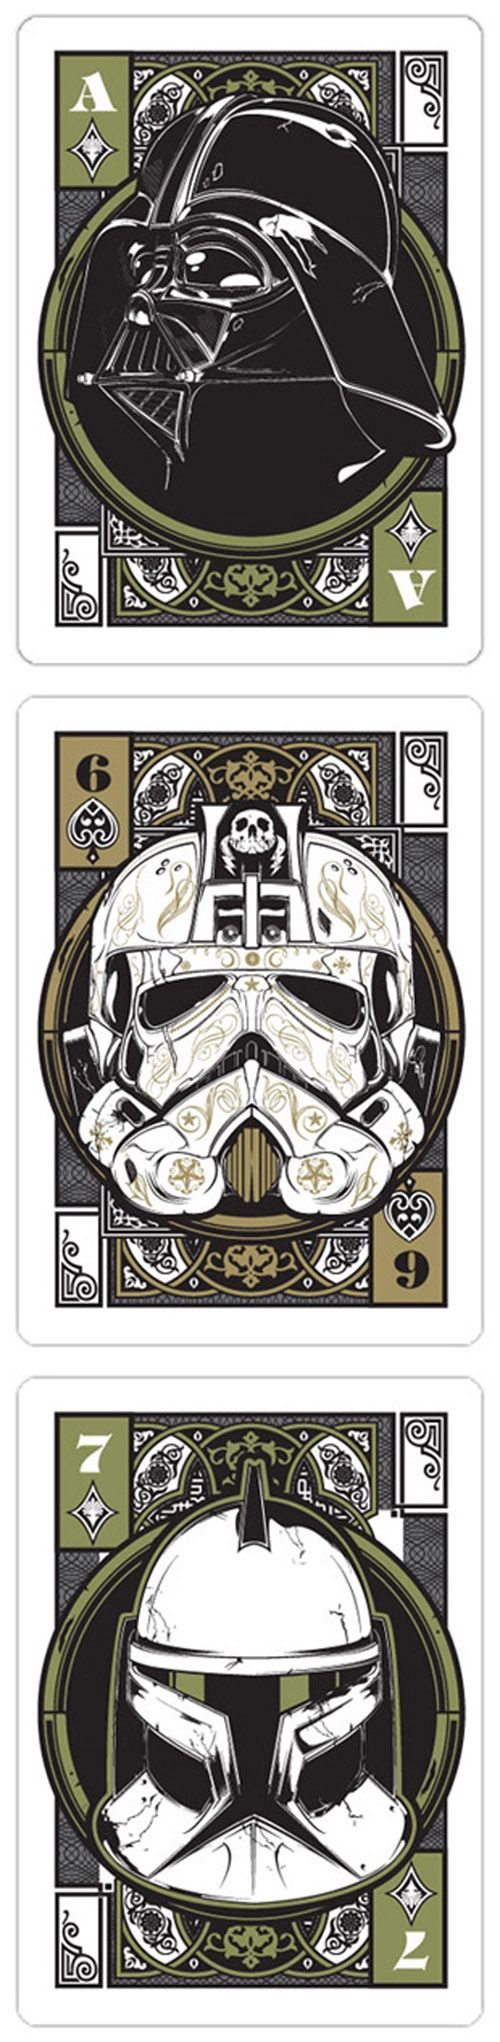 These Imperial playing cards are a great exemplar for a lesson where students are put into groups and design their own cards. Other theme examples could be world celebrations, tv show characters, eras, seasons, or a specific culture.